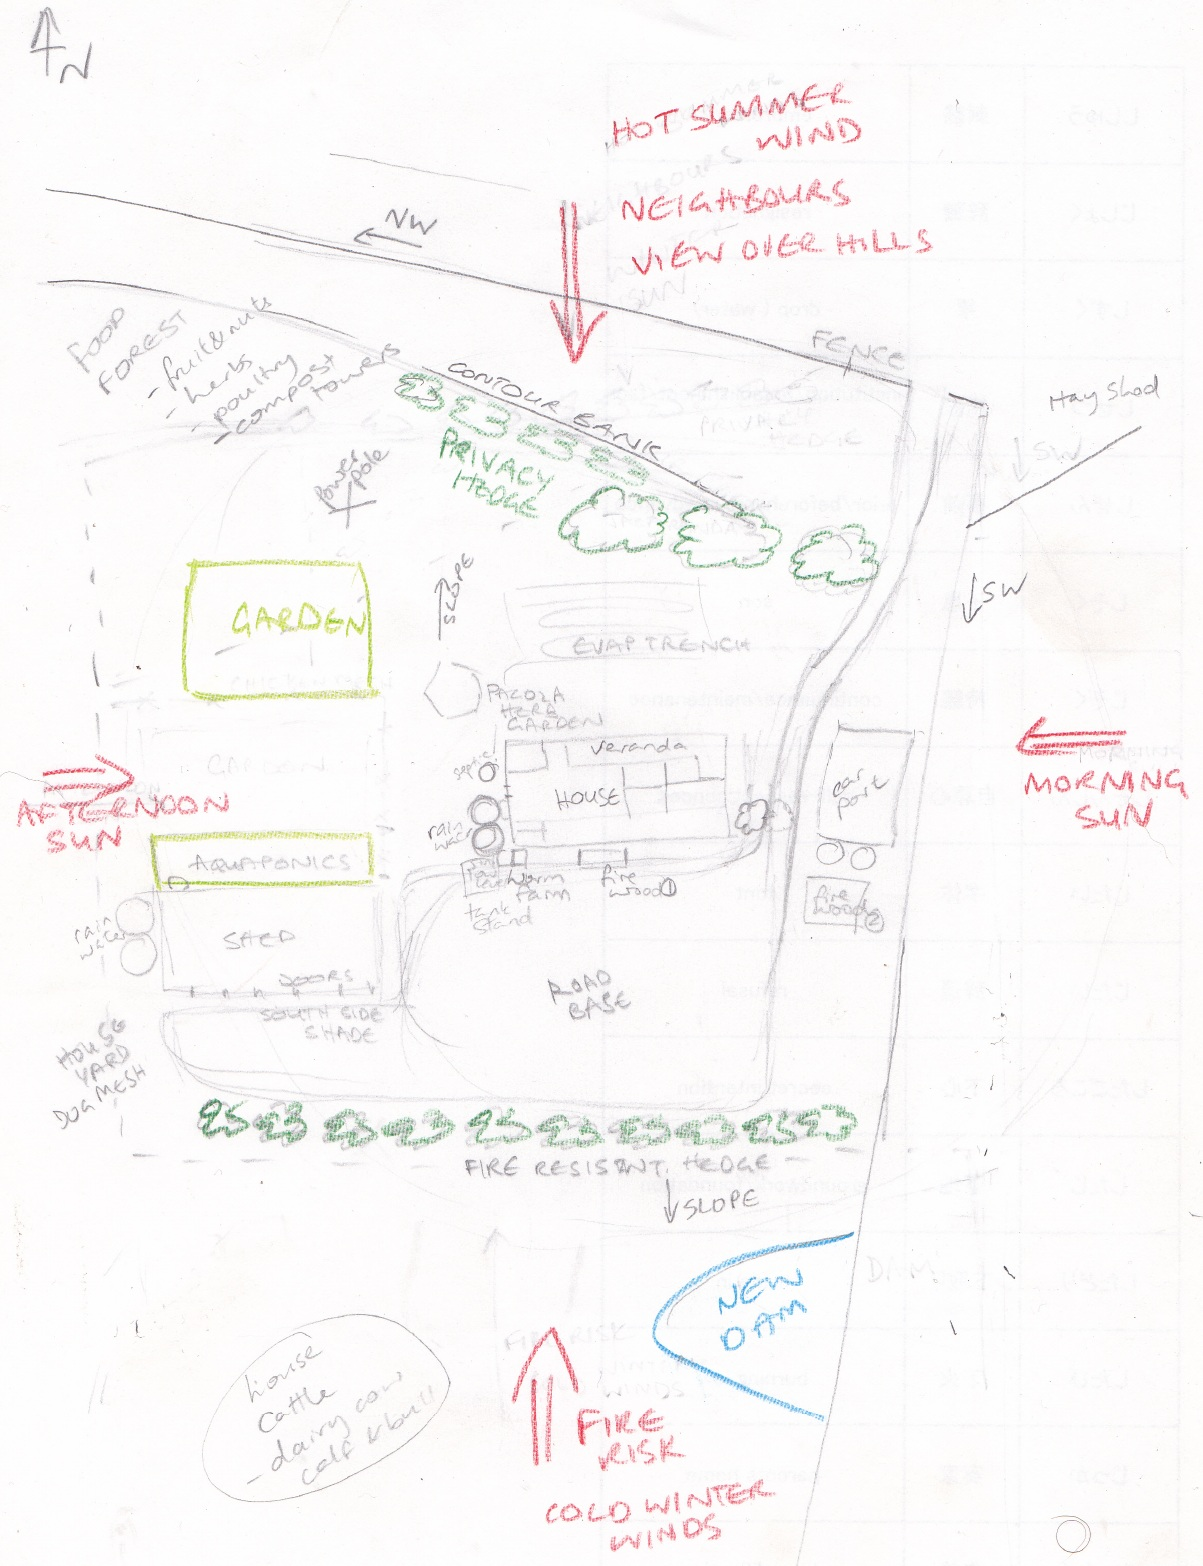 Permaculture Design Examples Google Search: Design From Patterns To Details